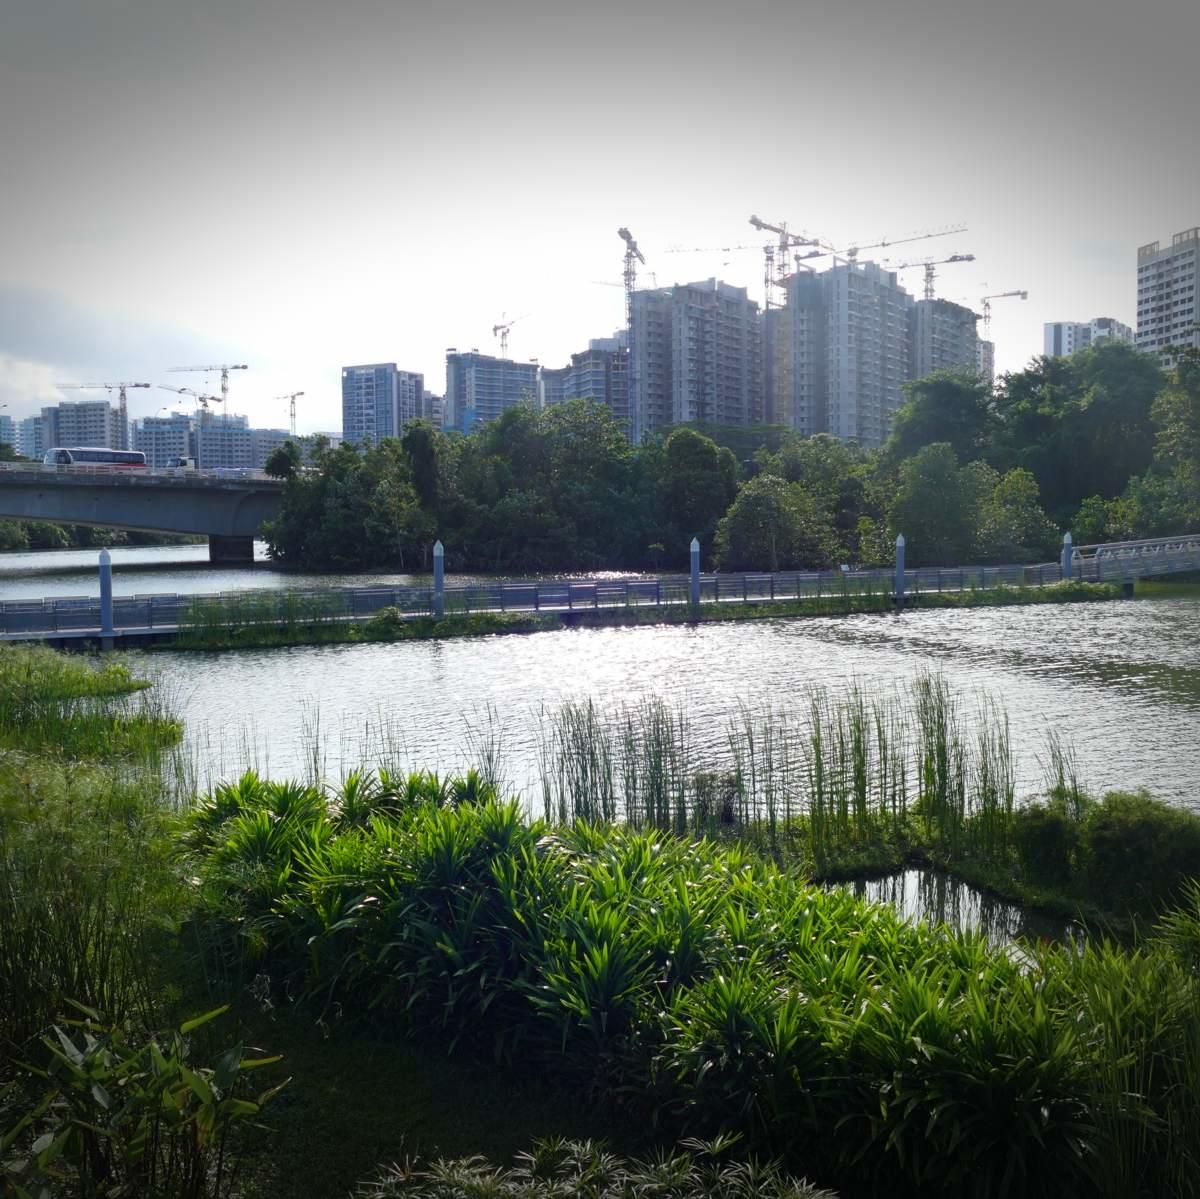 Birding in Singapore is mostly in urban parks. Noah Strycker